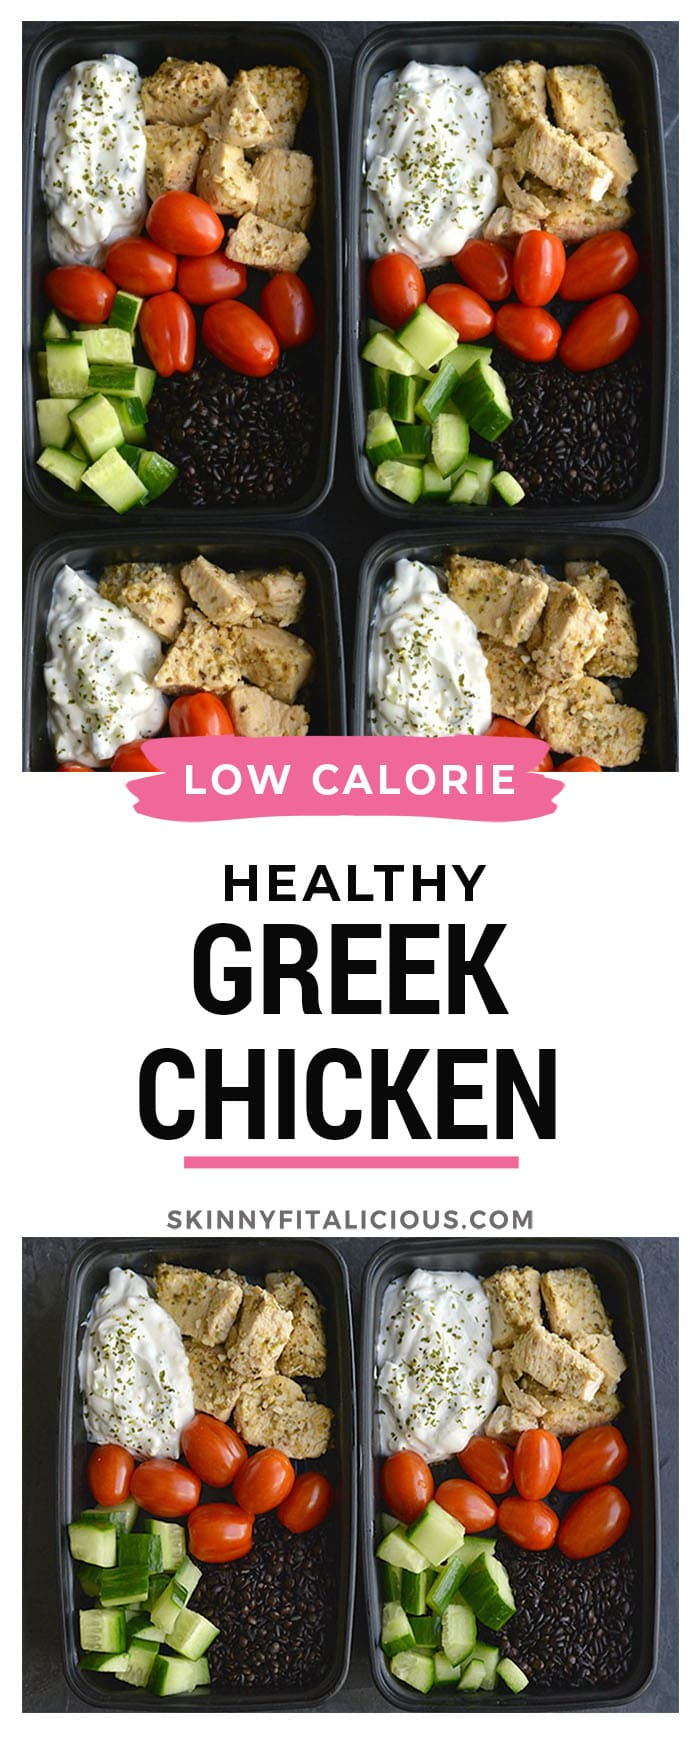 Meal Prep Greek Chicken Quinoa! Made in under 30 minutes in an Instant Pot. Paired with quinoa, tzatziki, cucumber and tomatoes for a Mediterranean style meal that is filling and full of flavor!